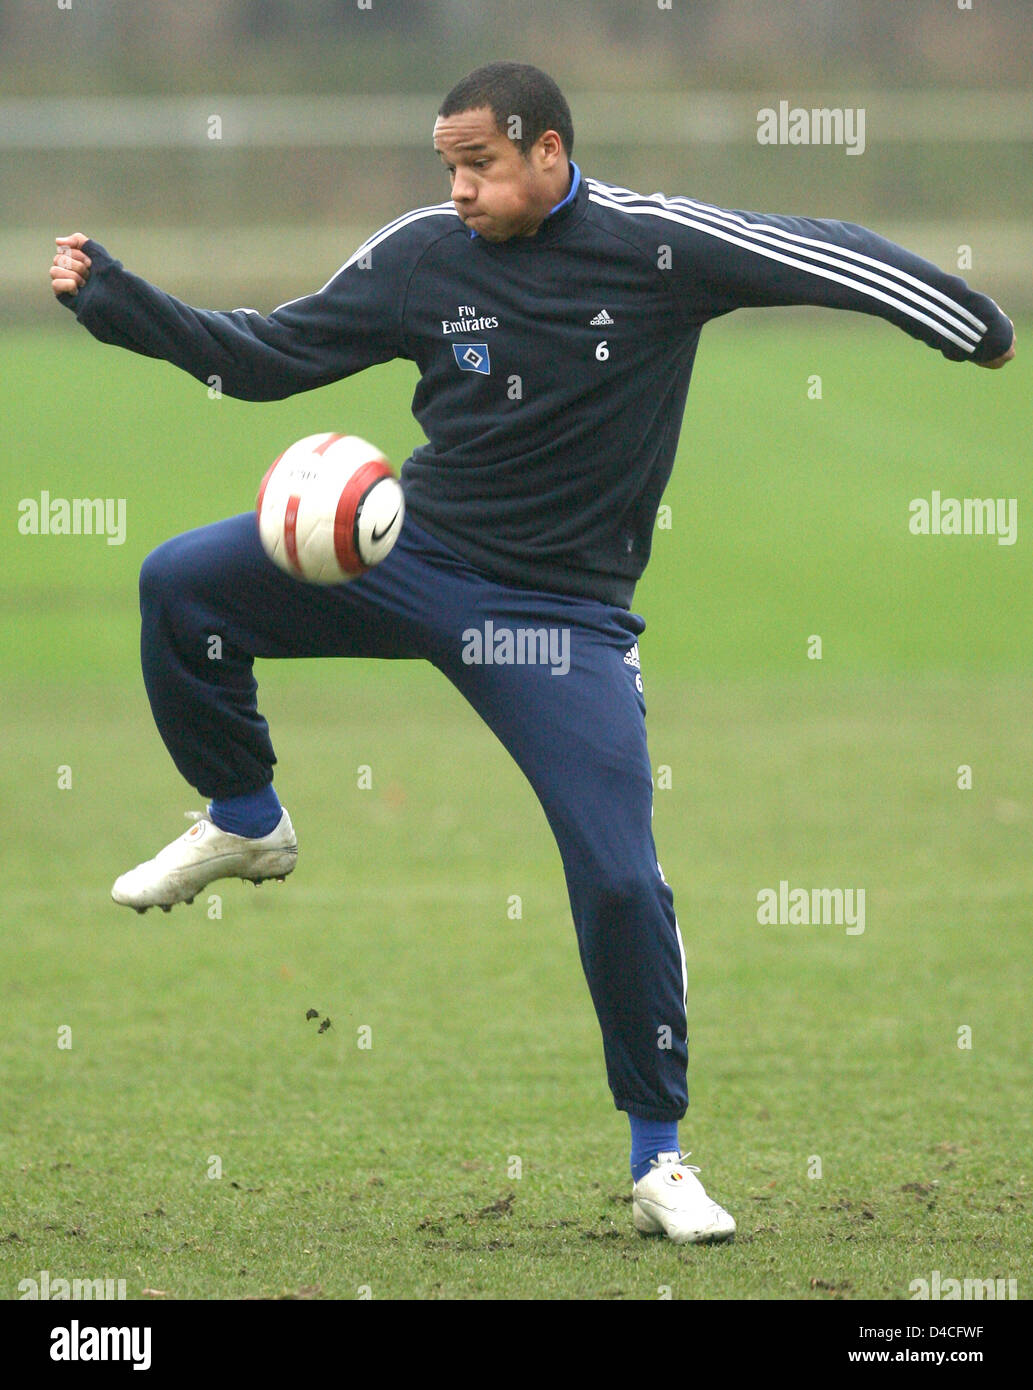 Bundesliga club SV Hamburg's new entry Vadis Odjidja-Ofoe from Belgium plays the ball during a public training - Stock Image